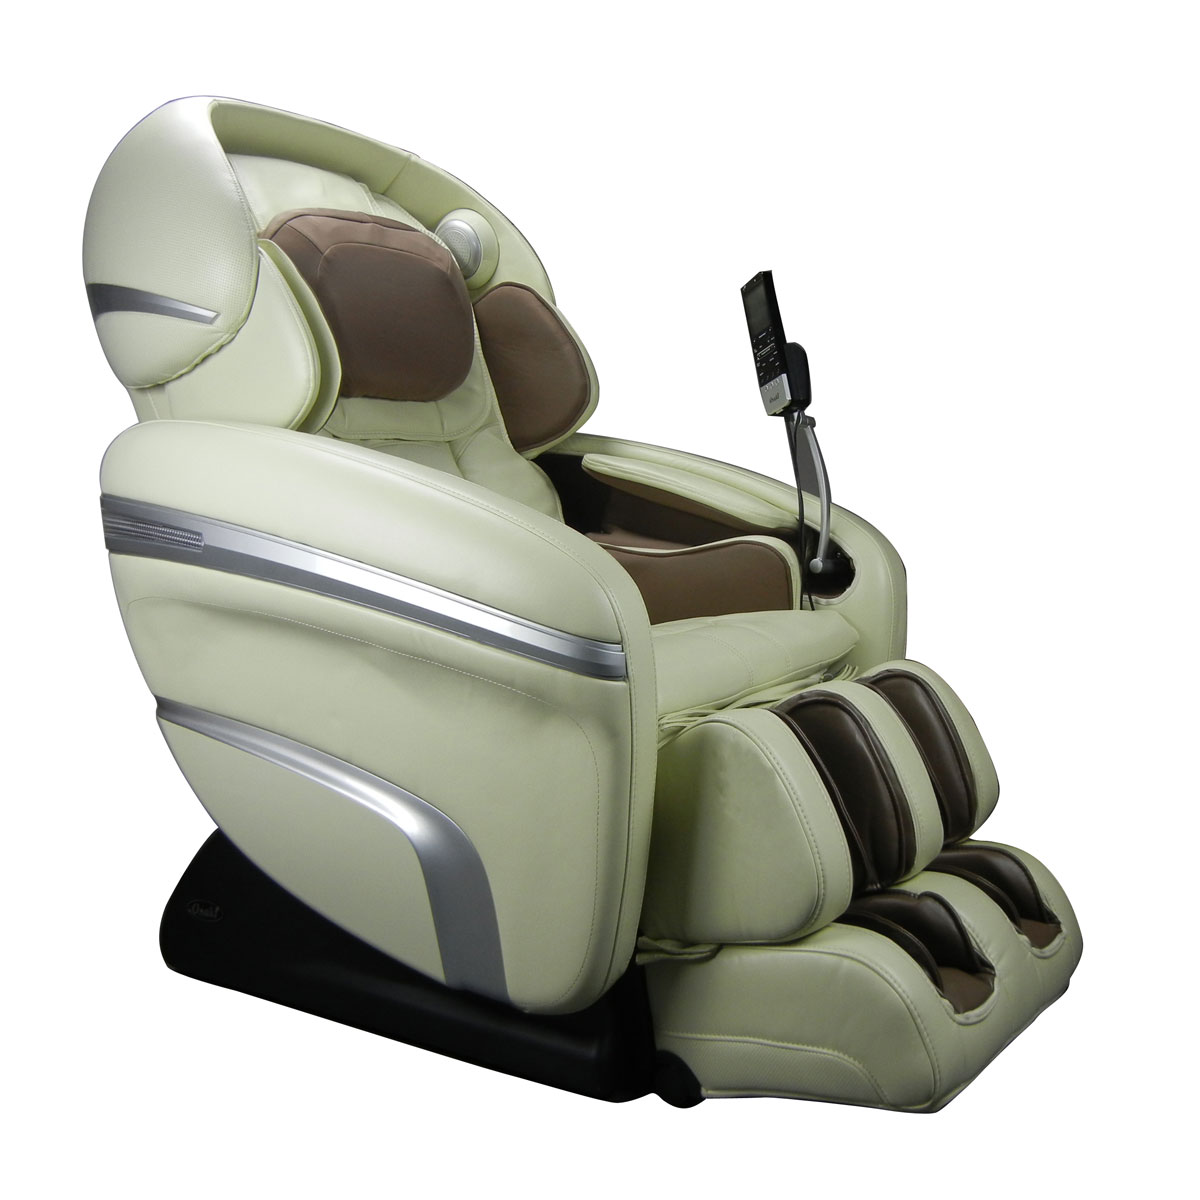 Osaki Massage Chair Dealers | Osaki Massage Chair | Osaki Massage